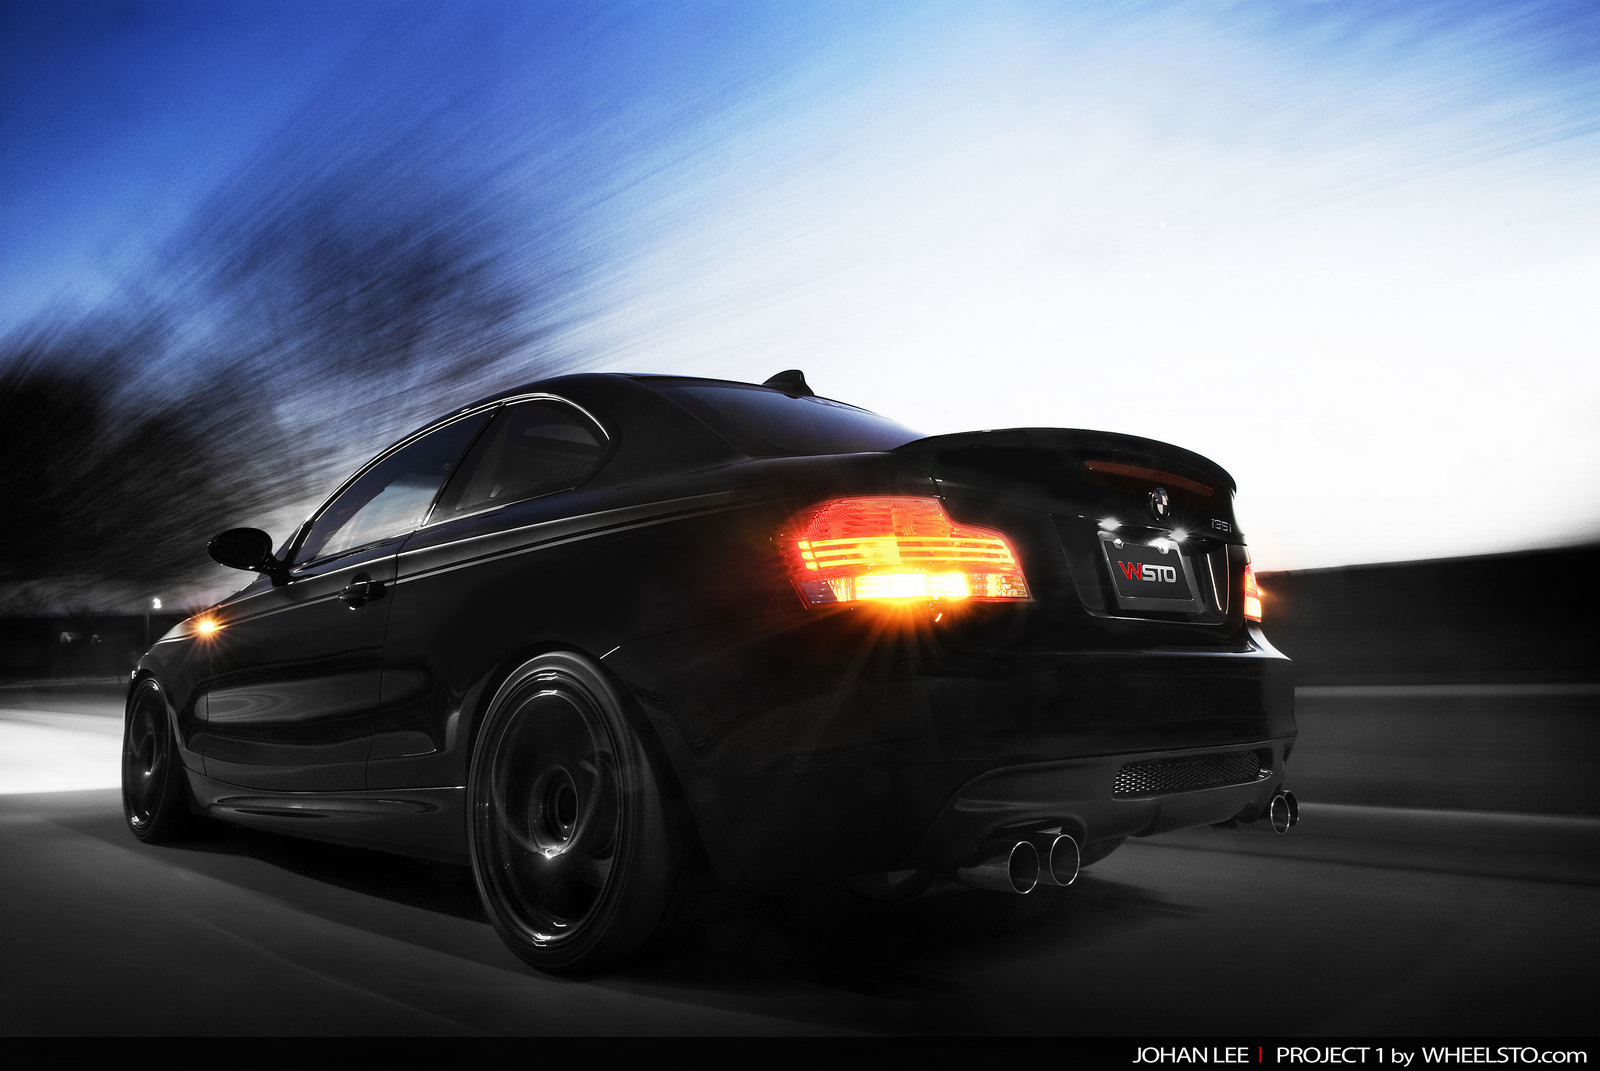 WSTO tuning kit for BMW 135i Coupe